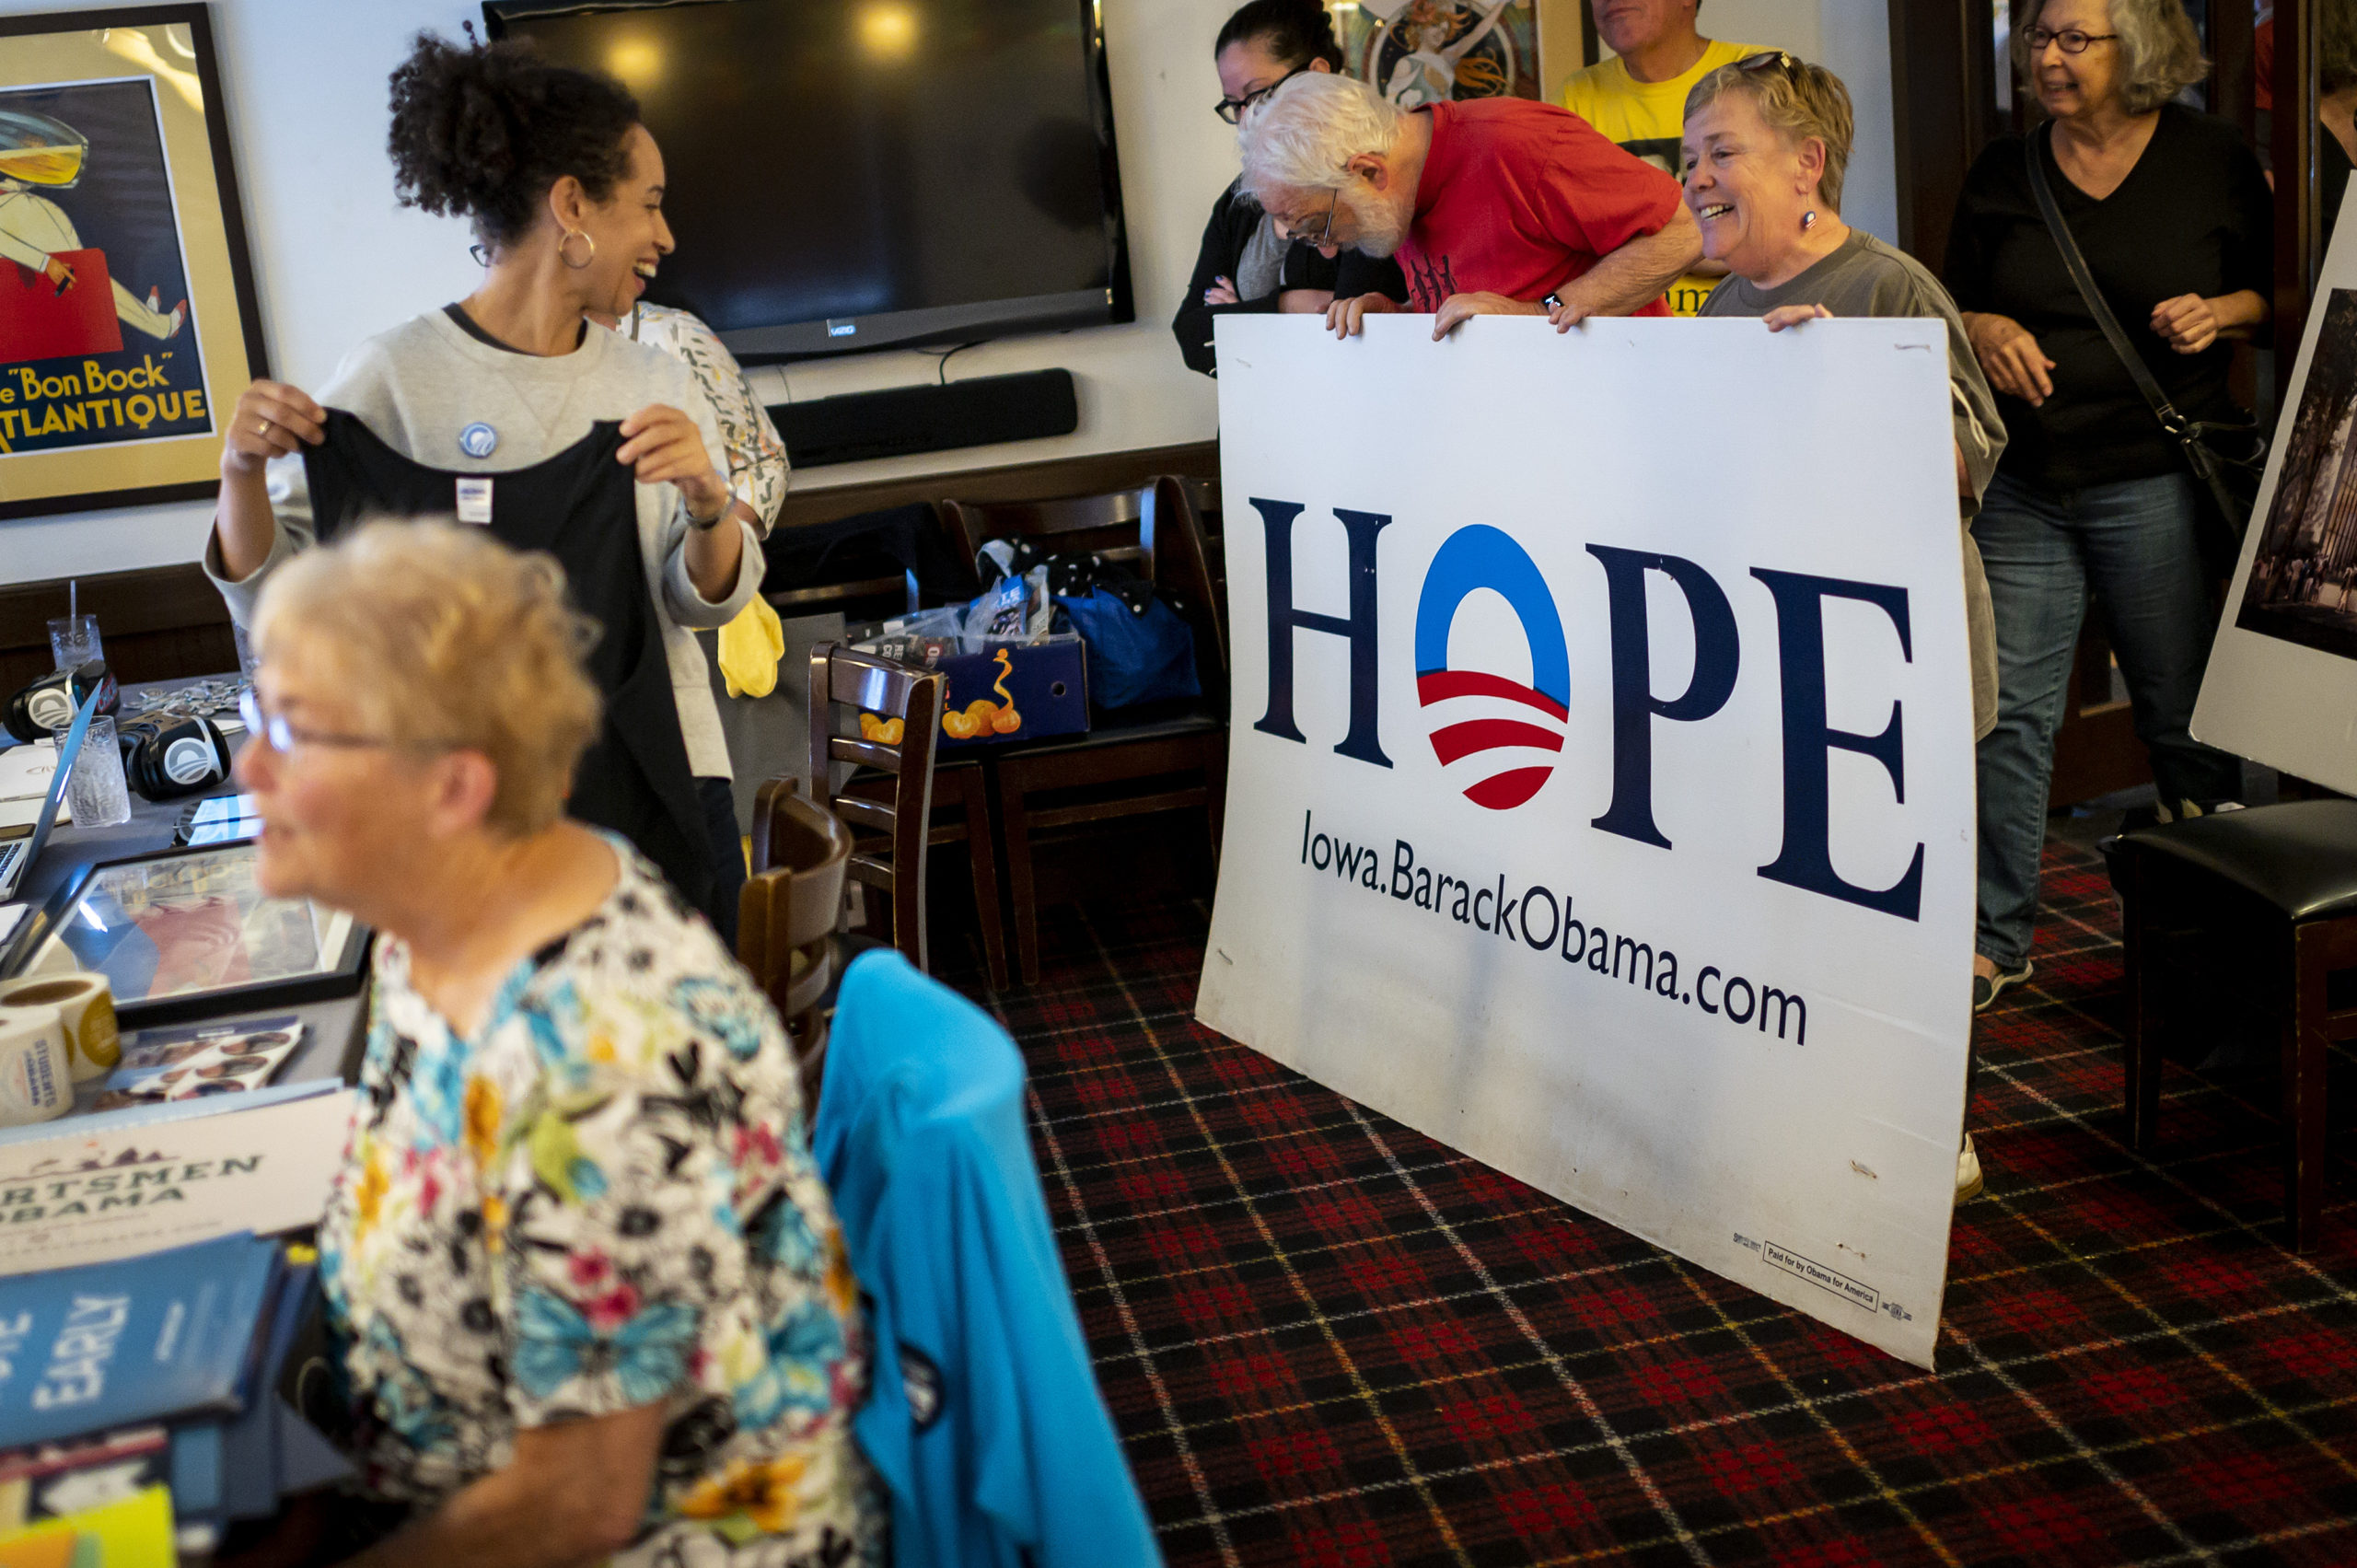 Louise Bernard reacts as supporters of President Obama's campaigns hold up a poster that reads